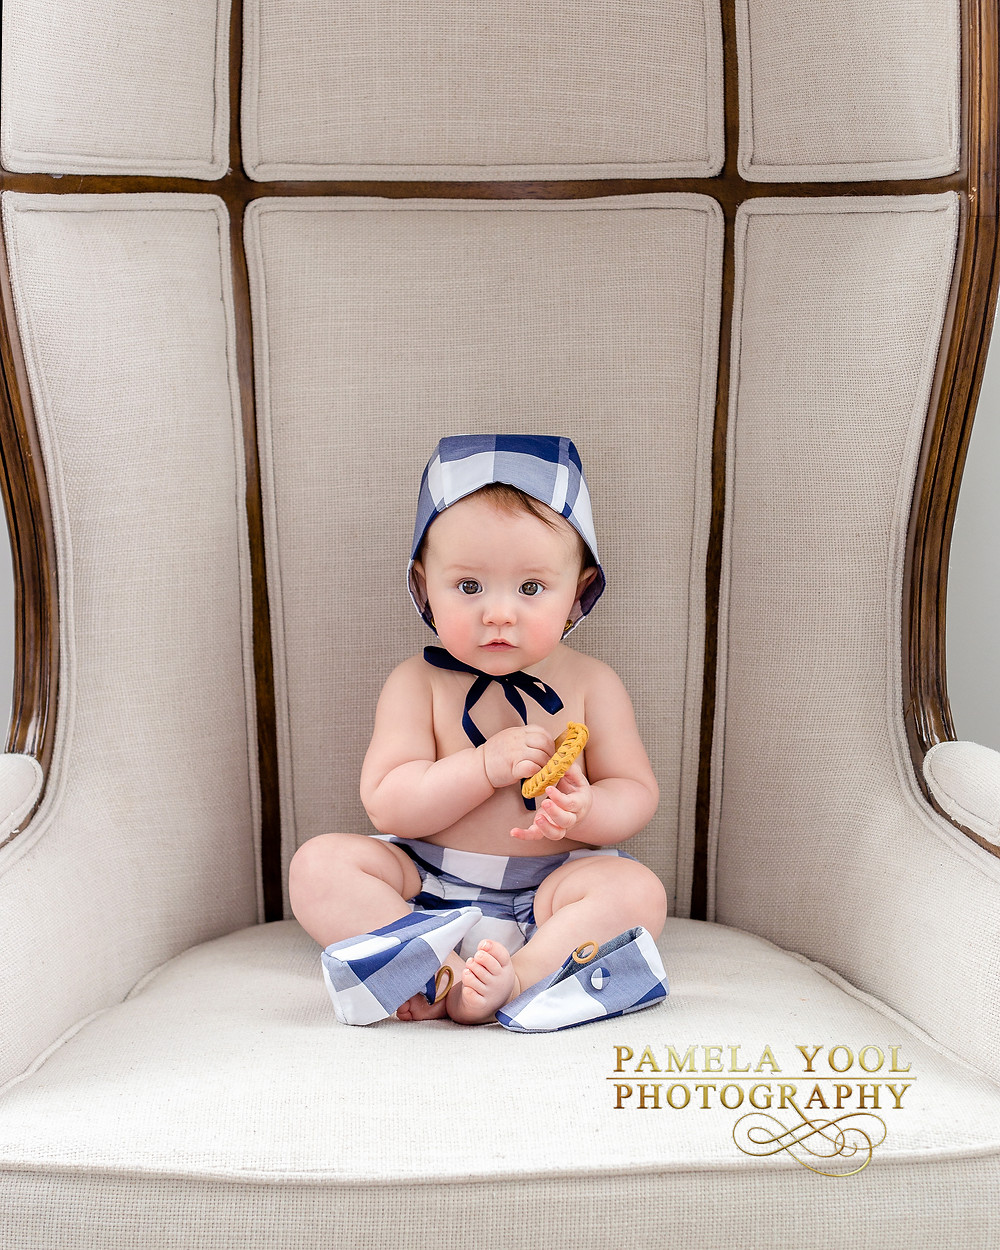 Photoshoot for Collaboration with Petits Genoux X Hästens, Handmade Canadian Baby wear